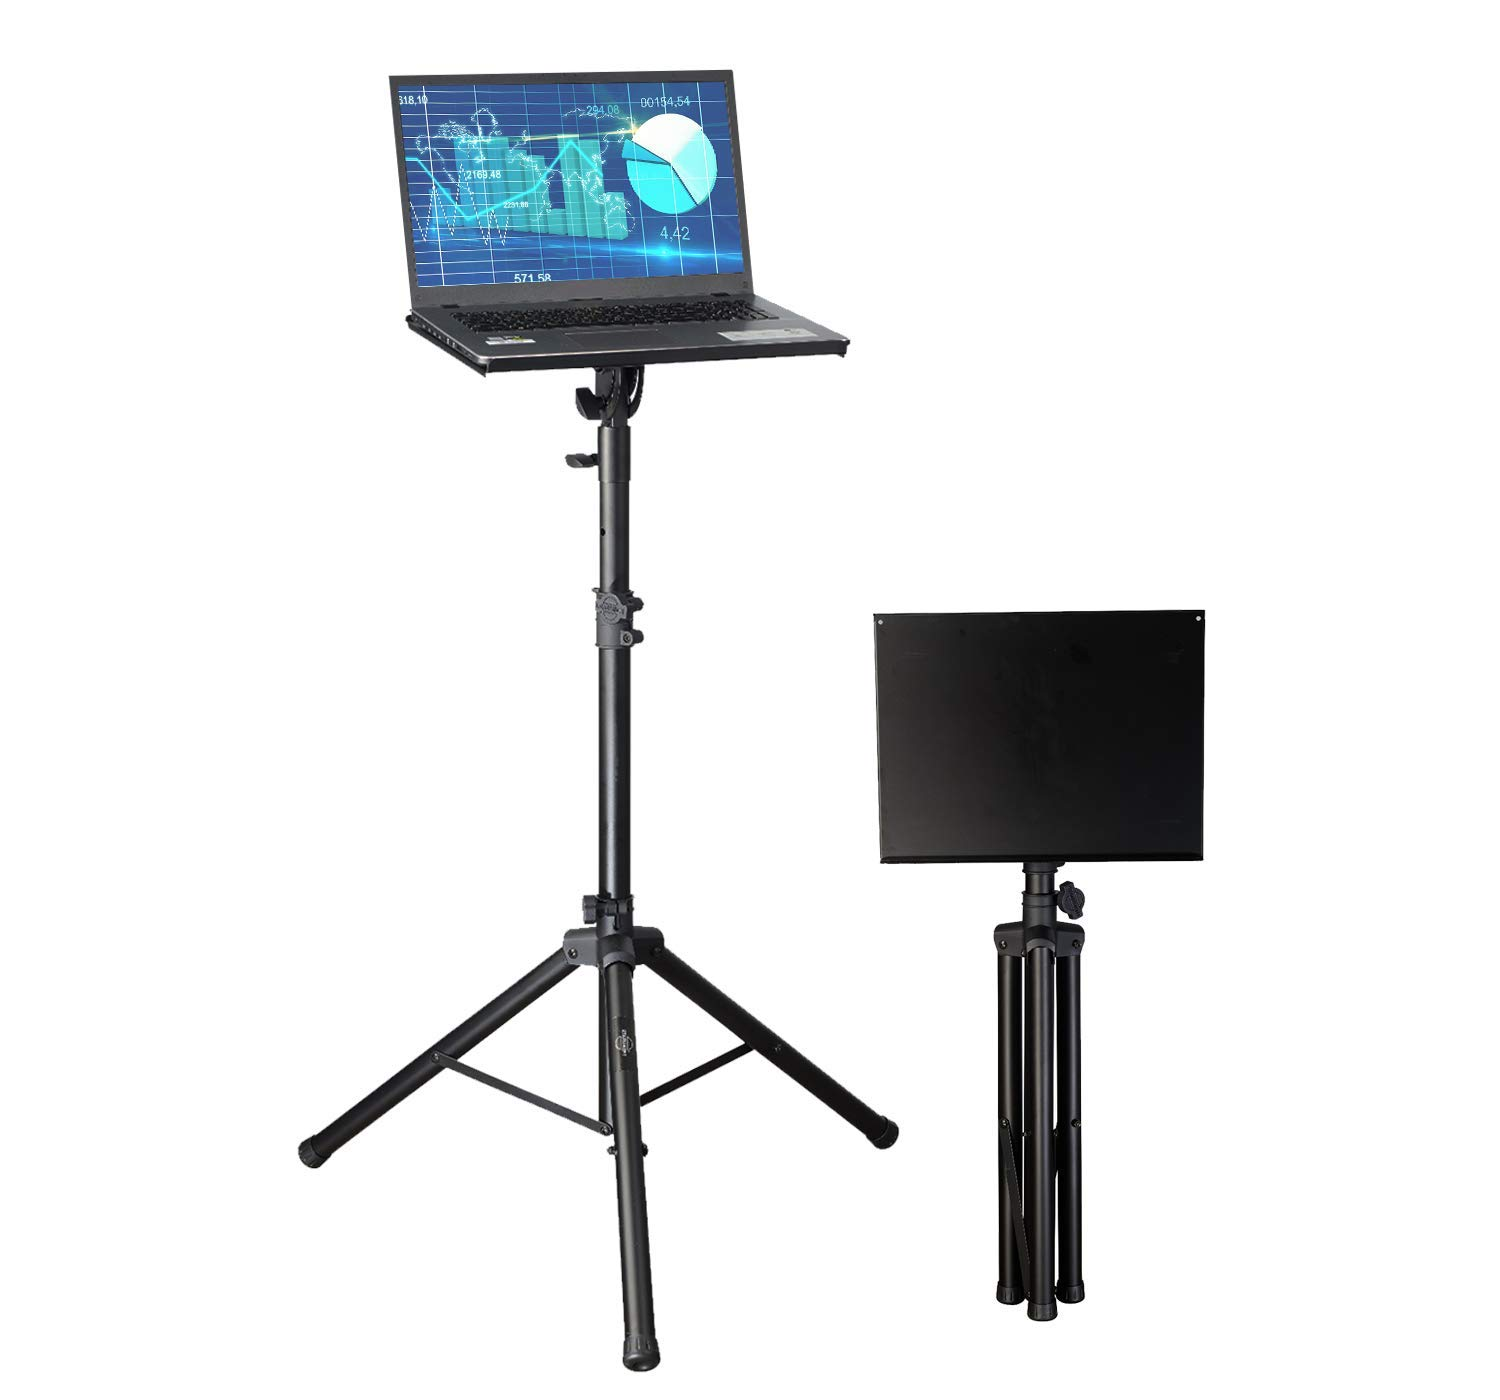 Professional Adjustable 32.3'' - 52'' Laptop DJ Mixer Tripod Stand | Lightweight & Portable 15.3'' x 12.2'' Tilted Tri-Pod Tray for Processors, Audio Controllers & Tablets | Raised Edges for Protection by STARUMENT (Image #3)